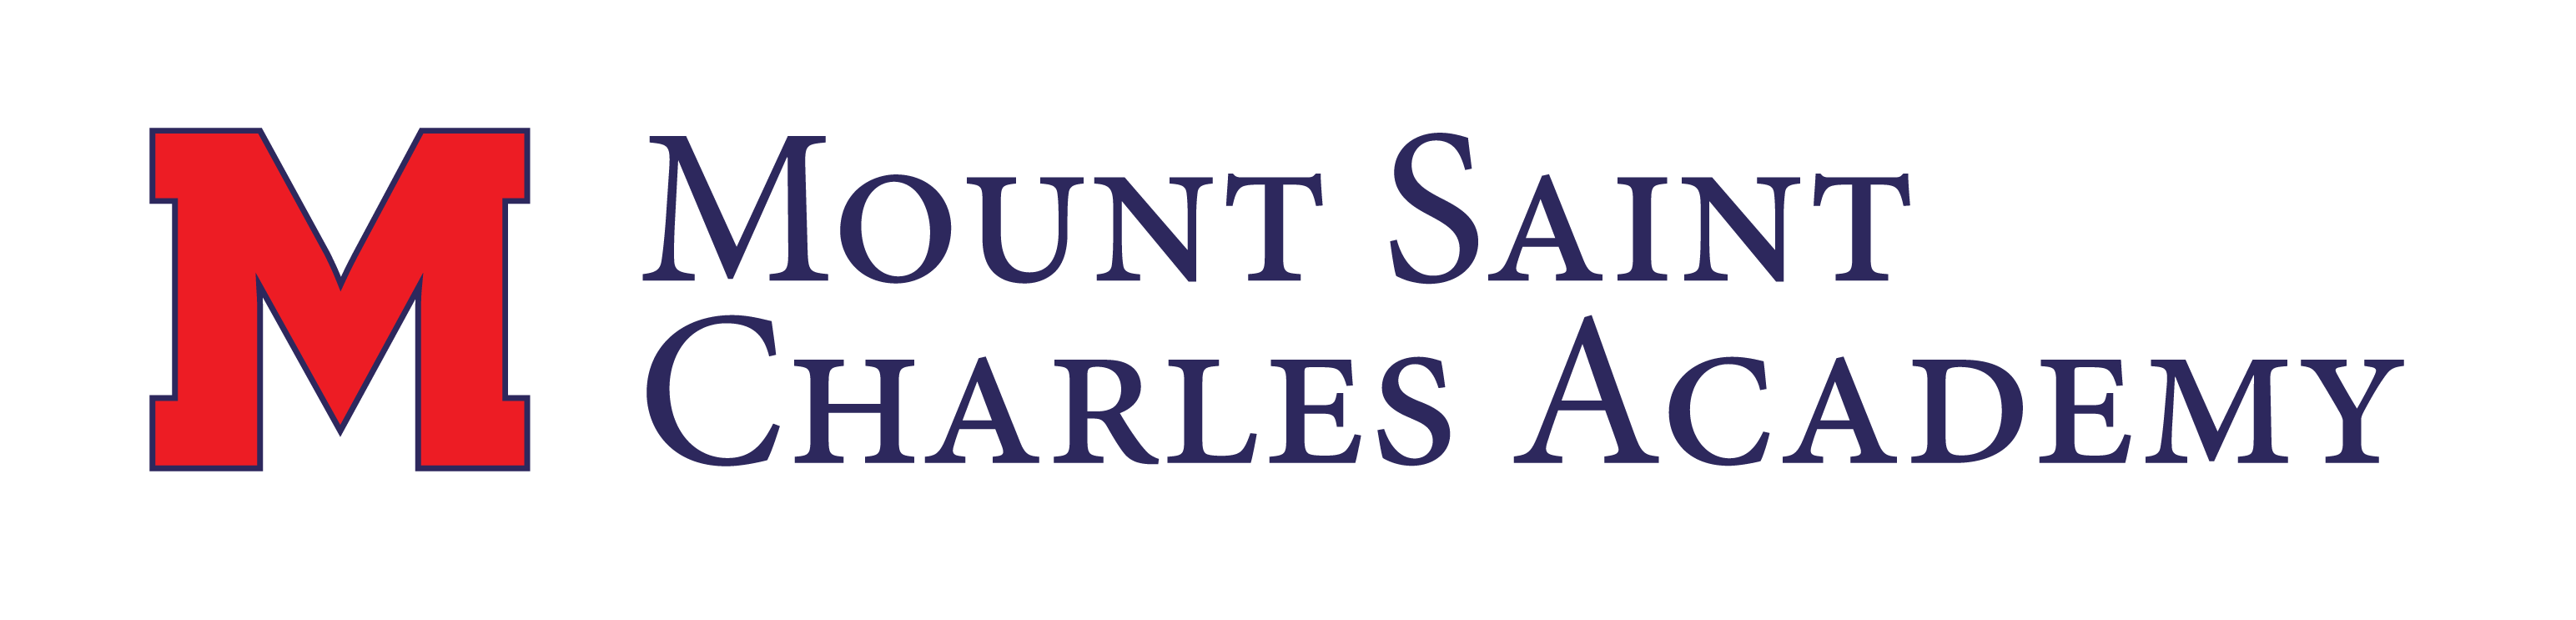 2020 Mount St Charles Christmas Tournament Mount Saint Charles Academy | Be a Mountie and you can be anything